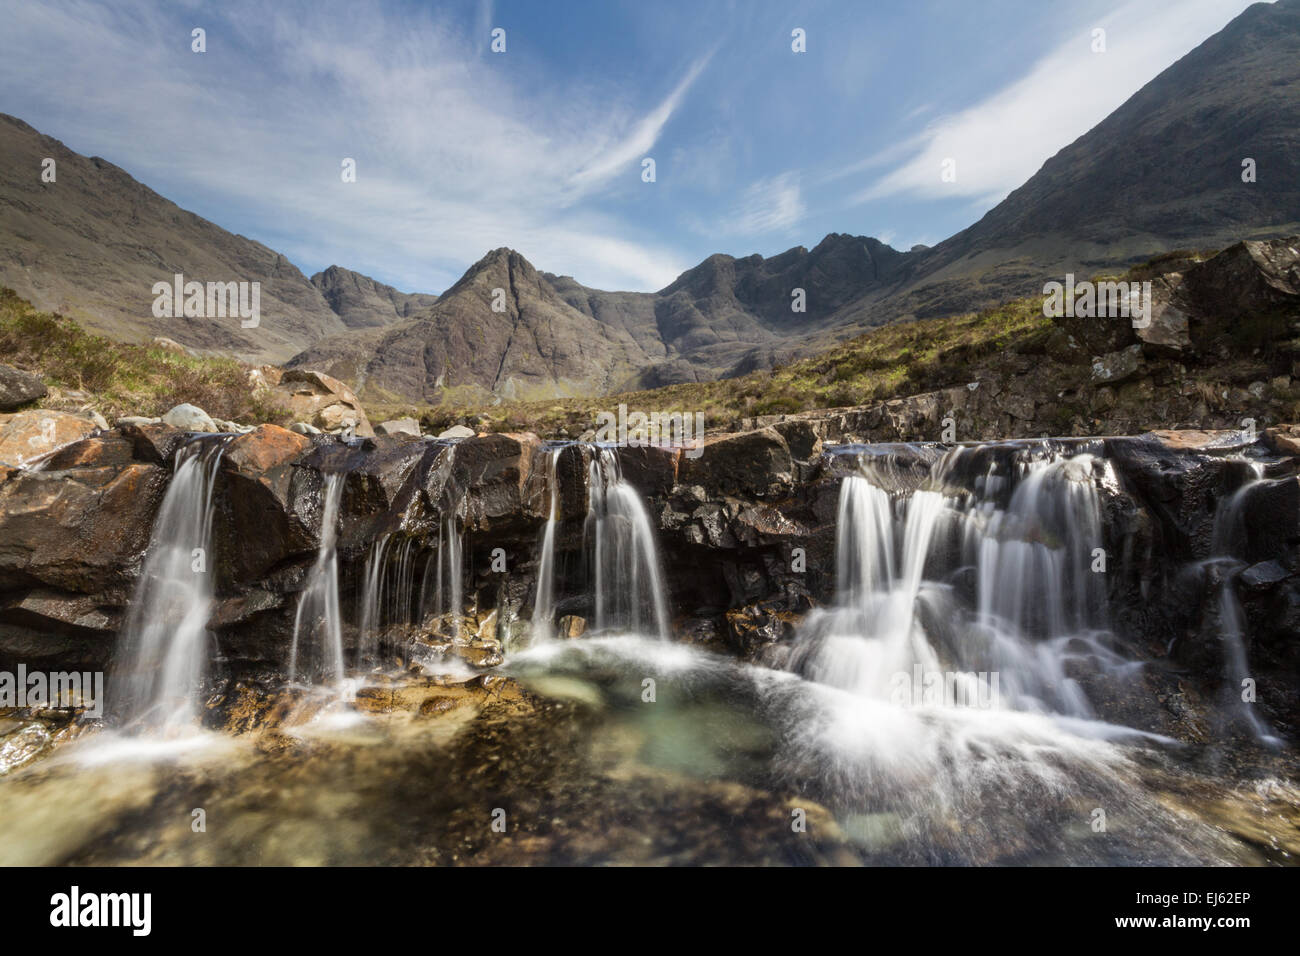 A cascade of waterfalls into a pool amongst the Fairy Pools under the Cuillin Mountains on the Isle of Skye, Scotland - Stock Image